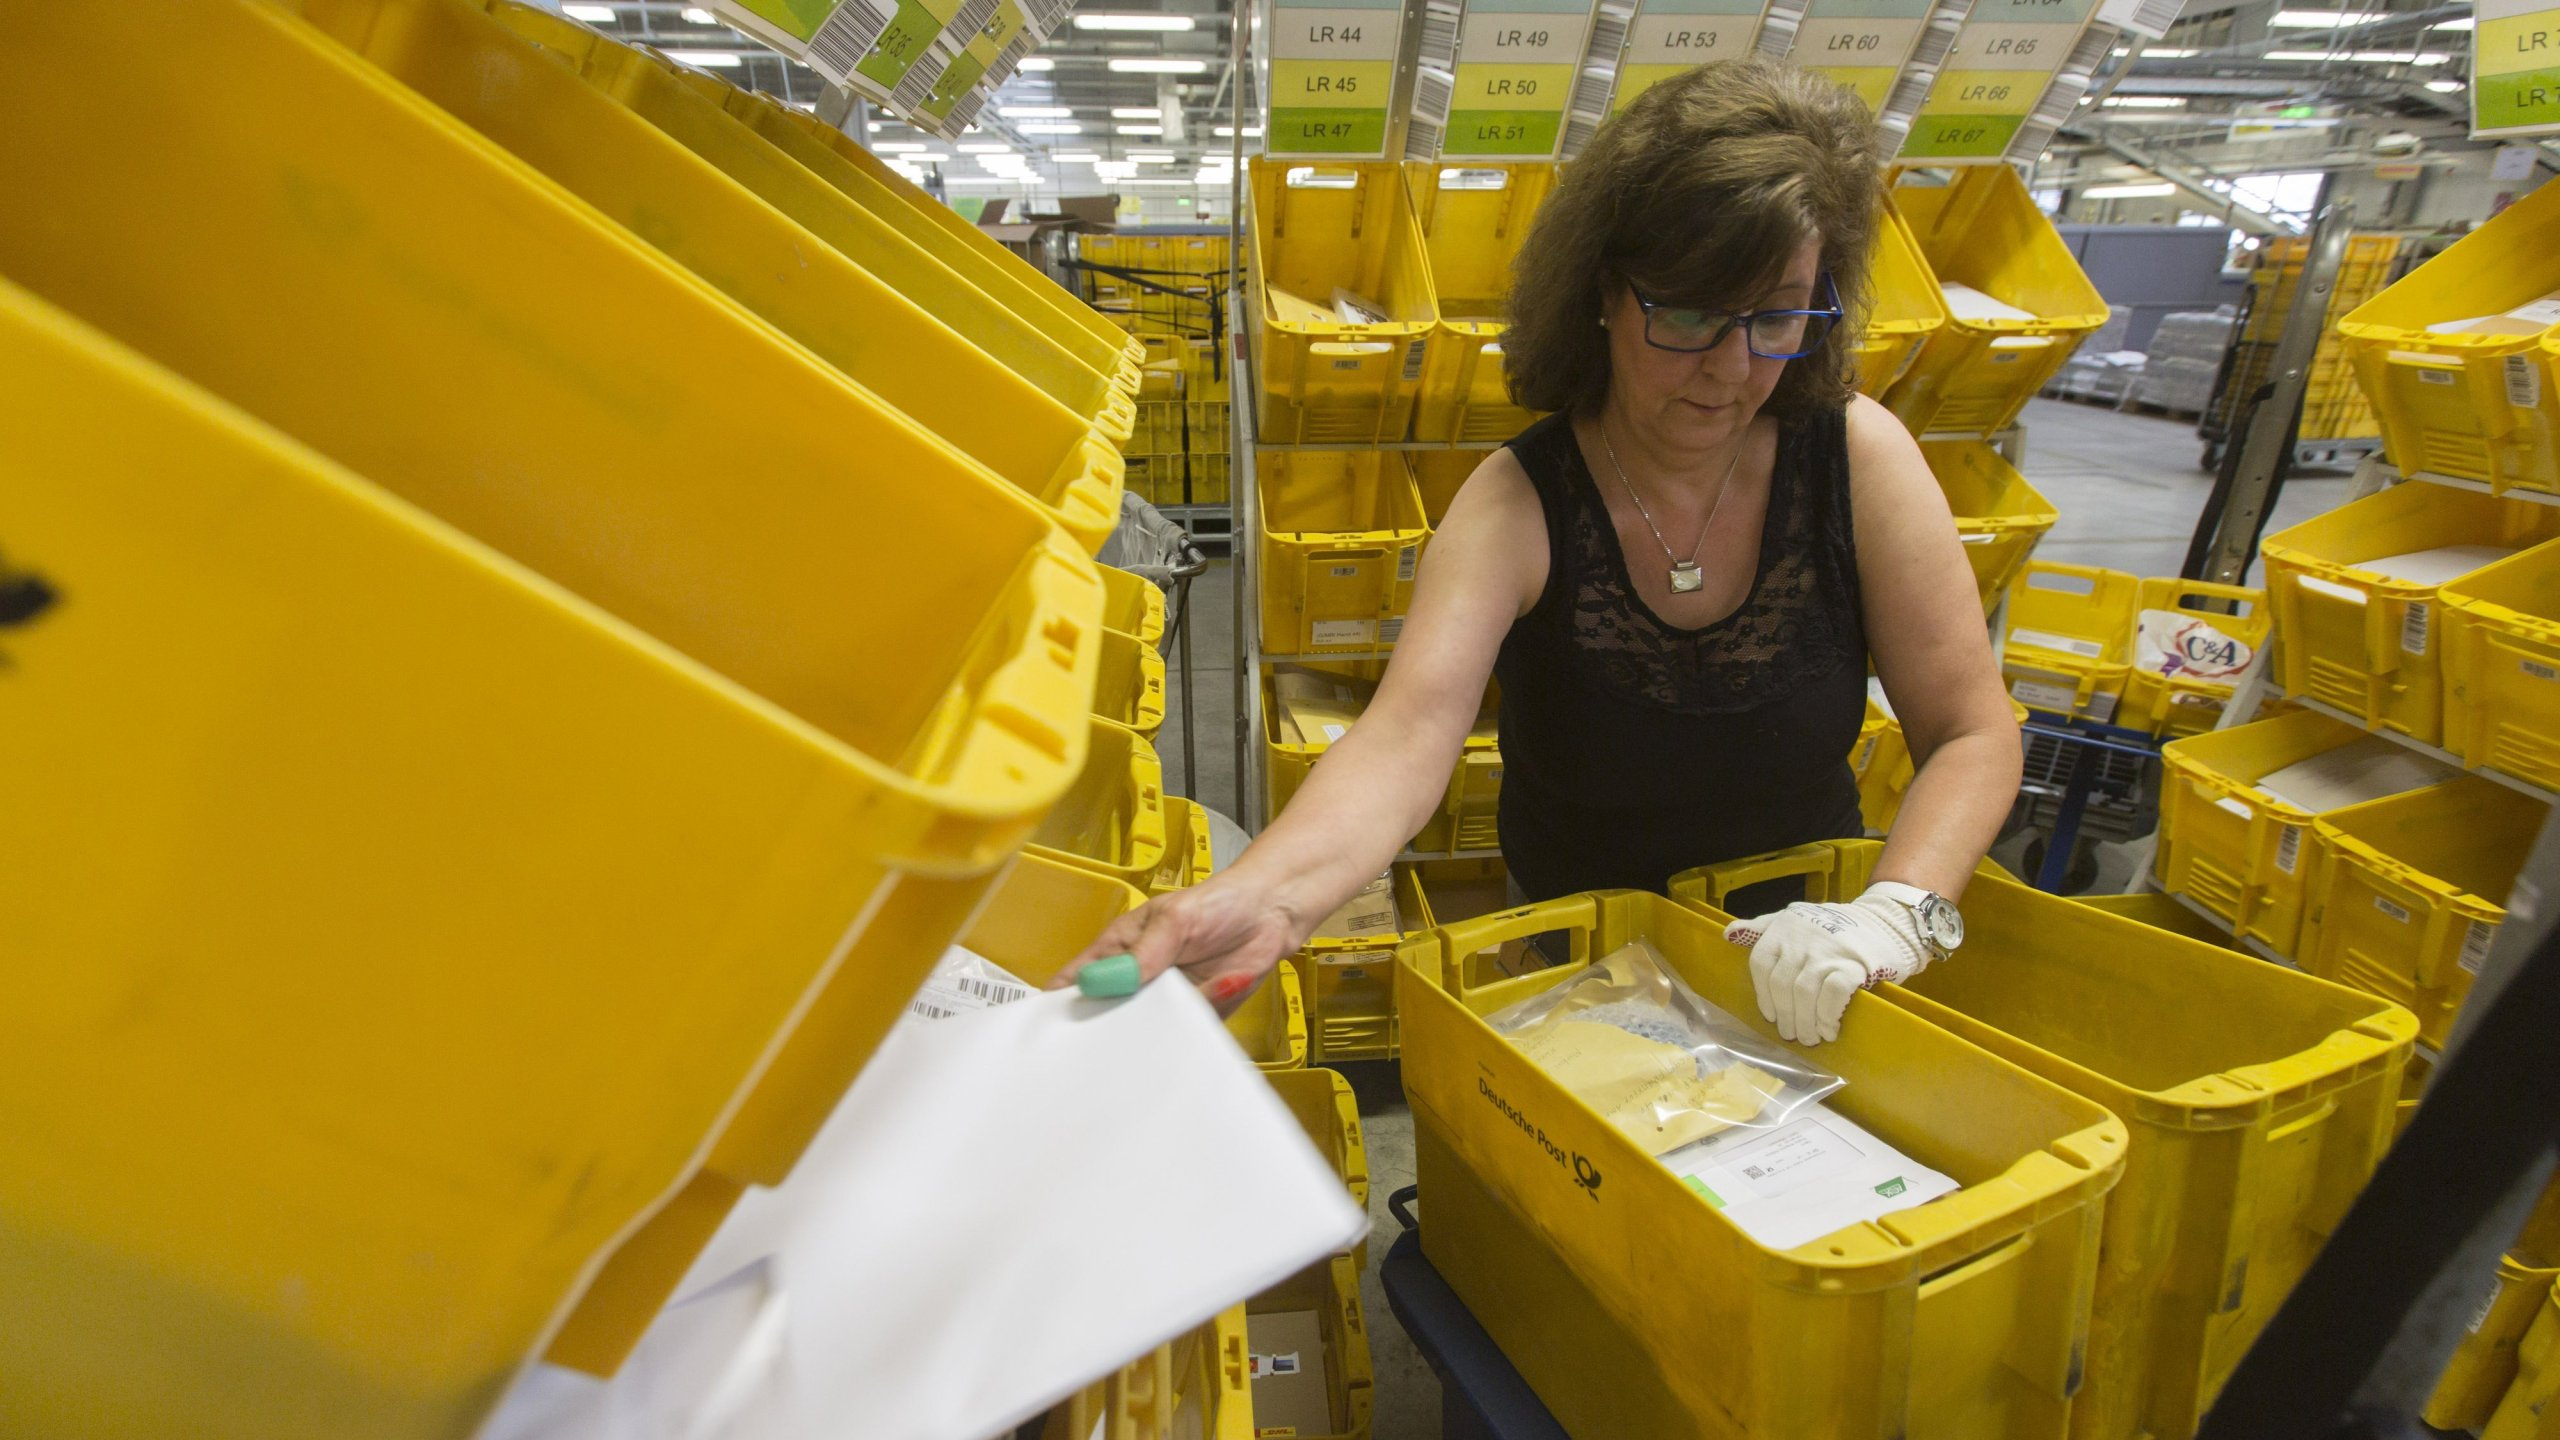 The German postal service is now offering customers the option to receive their post by email. (Credit: CNN)